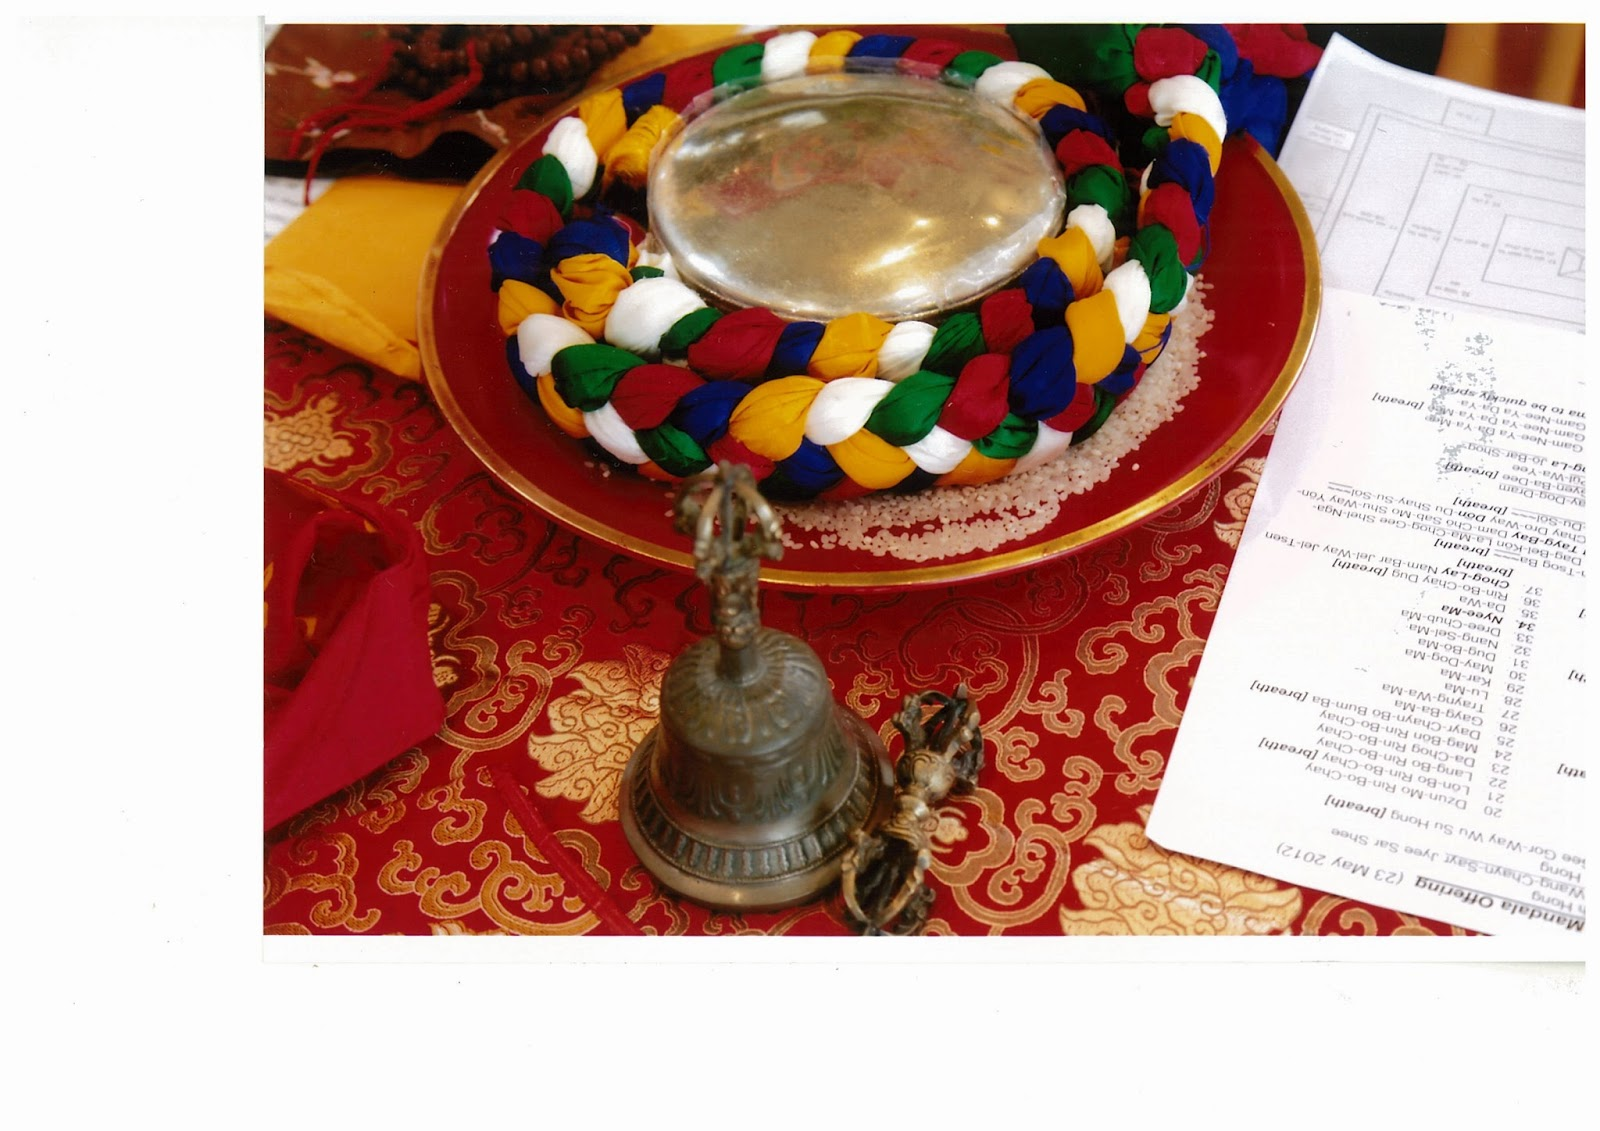 Shang Rinpoche Dharma